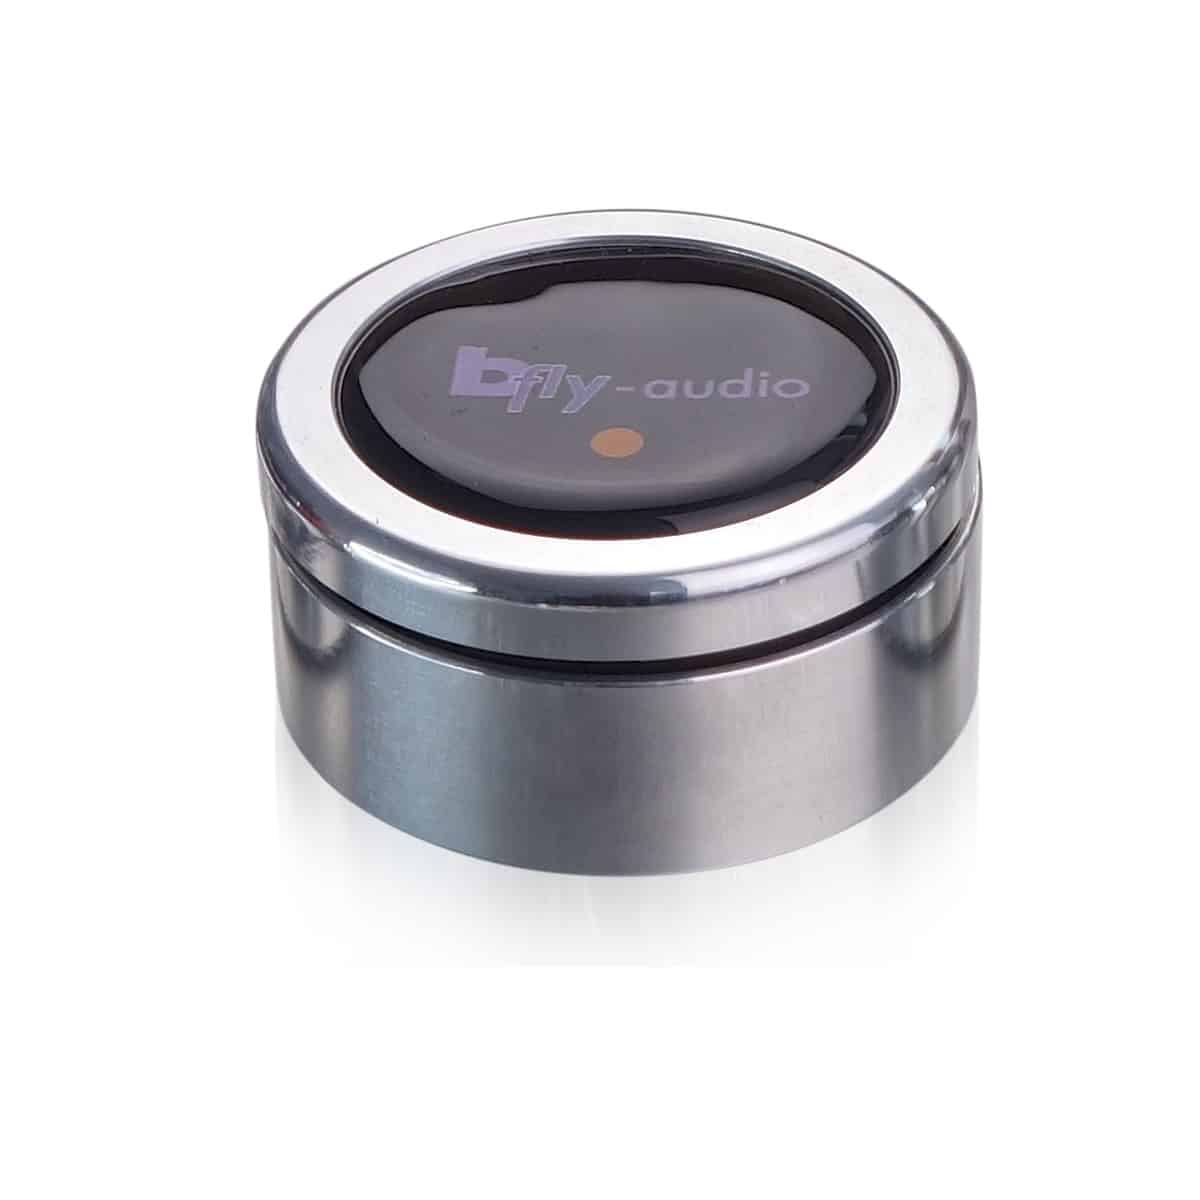 bfly-audio Absorber Pure 2